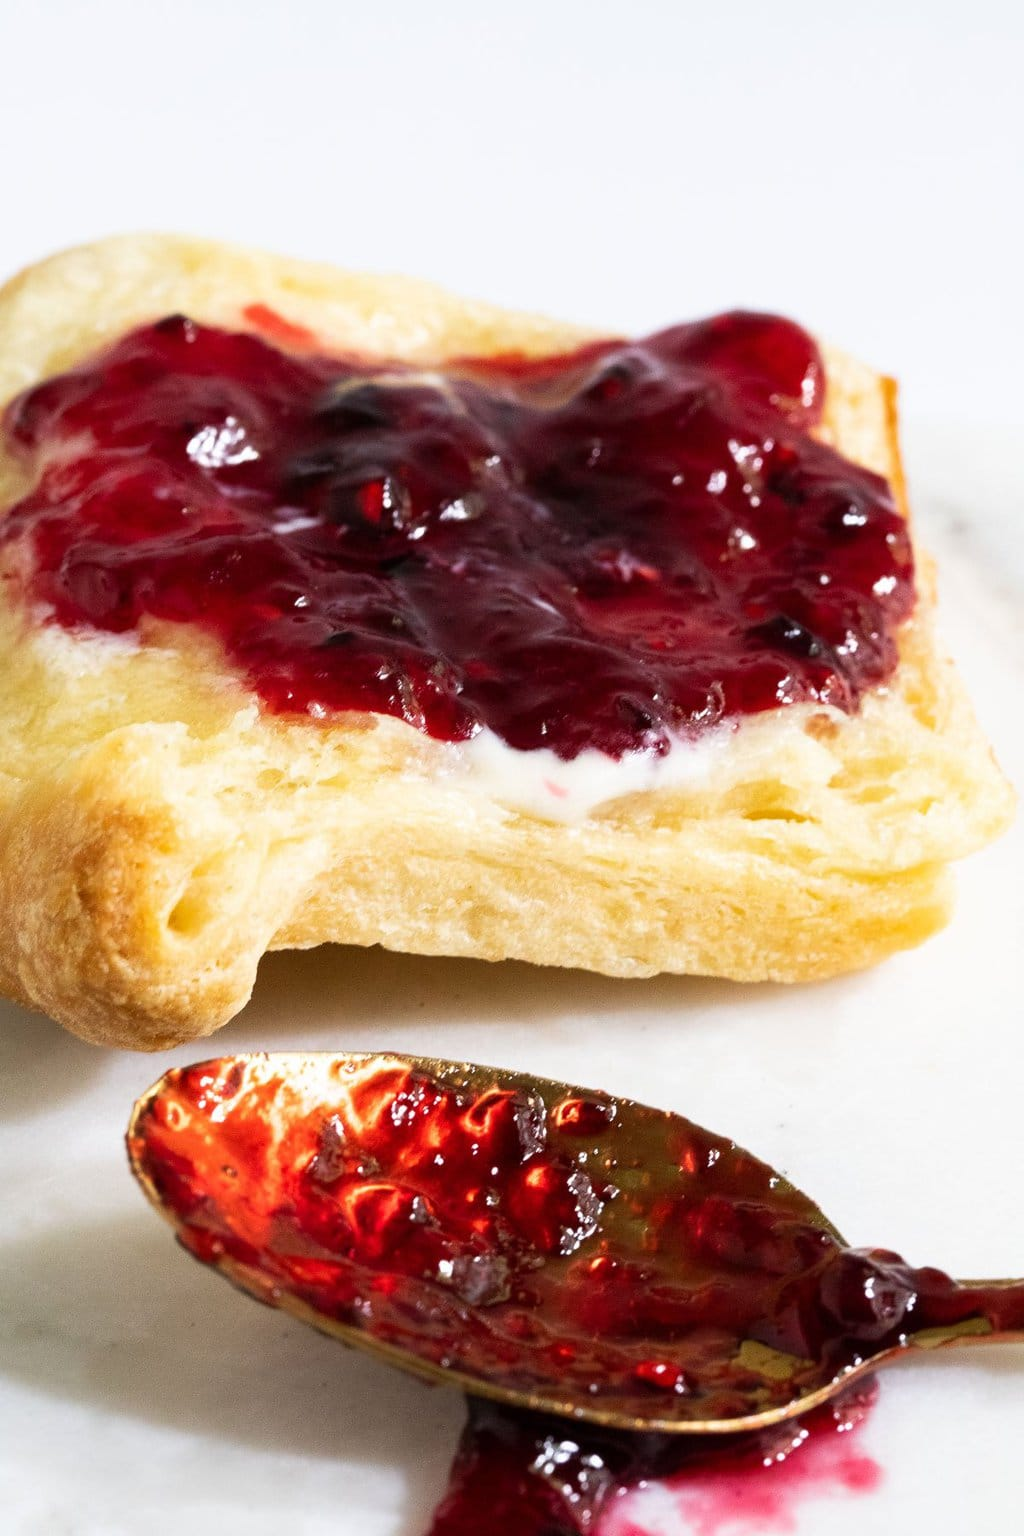 Vertical extreme closeup photo of Easy 30-Minute Blackberry Freezer Jam on a slice of fresh brioche bread.